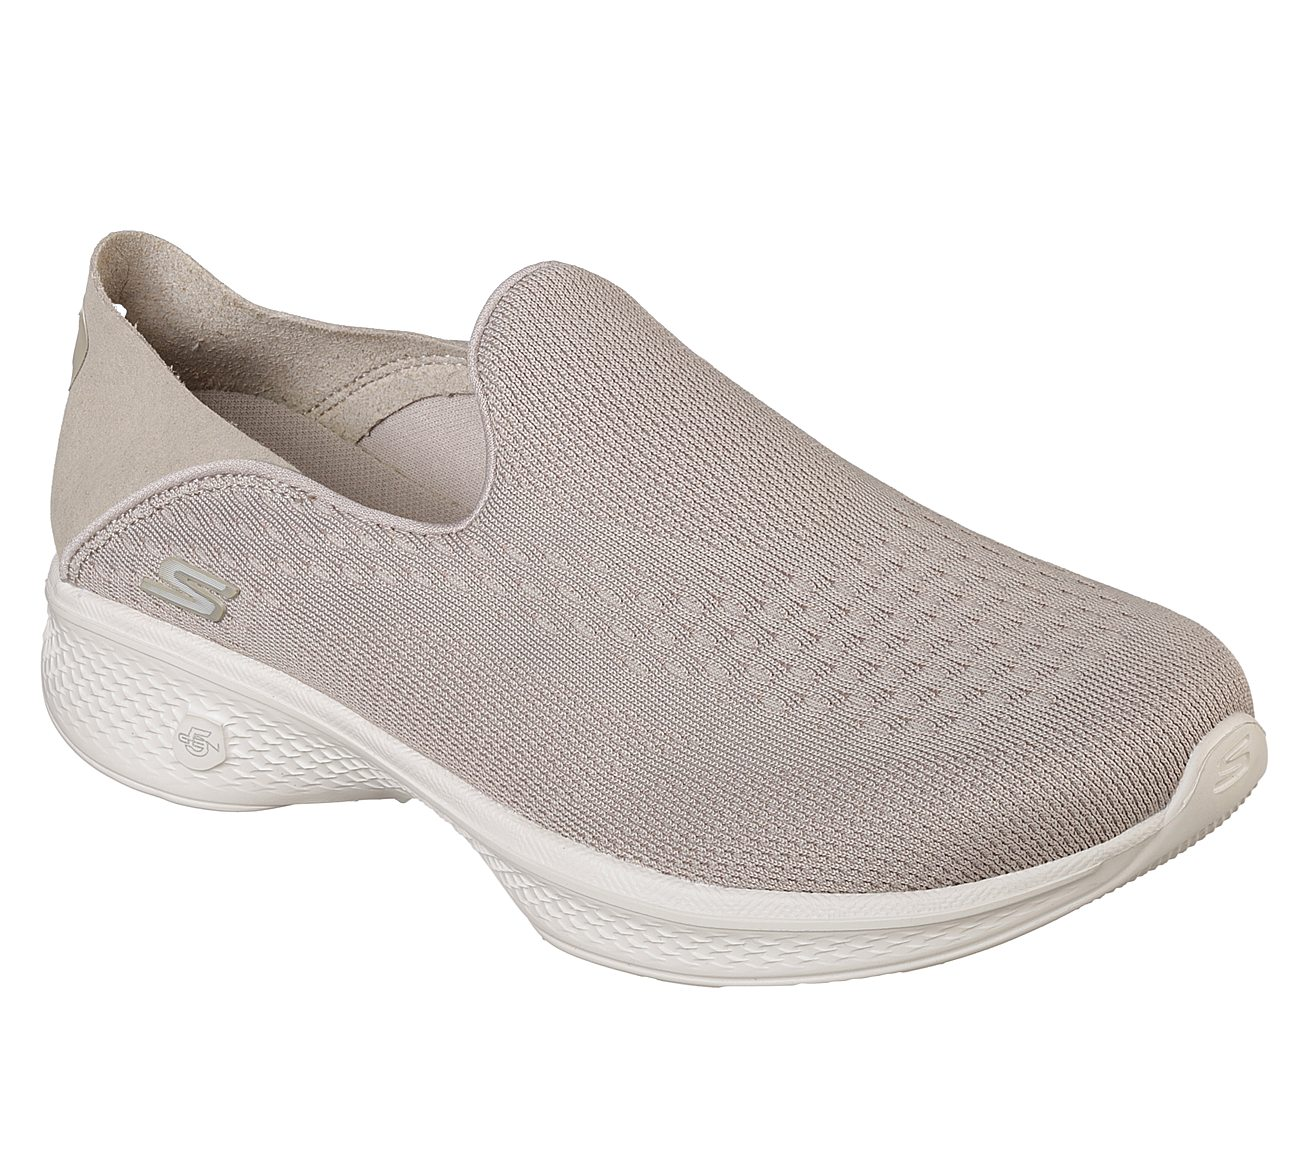 Skechers GOwalk 4 Convertible